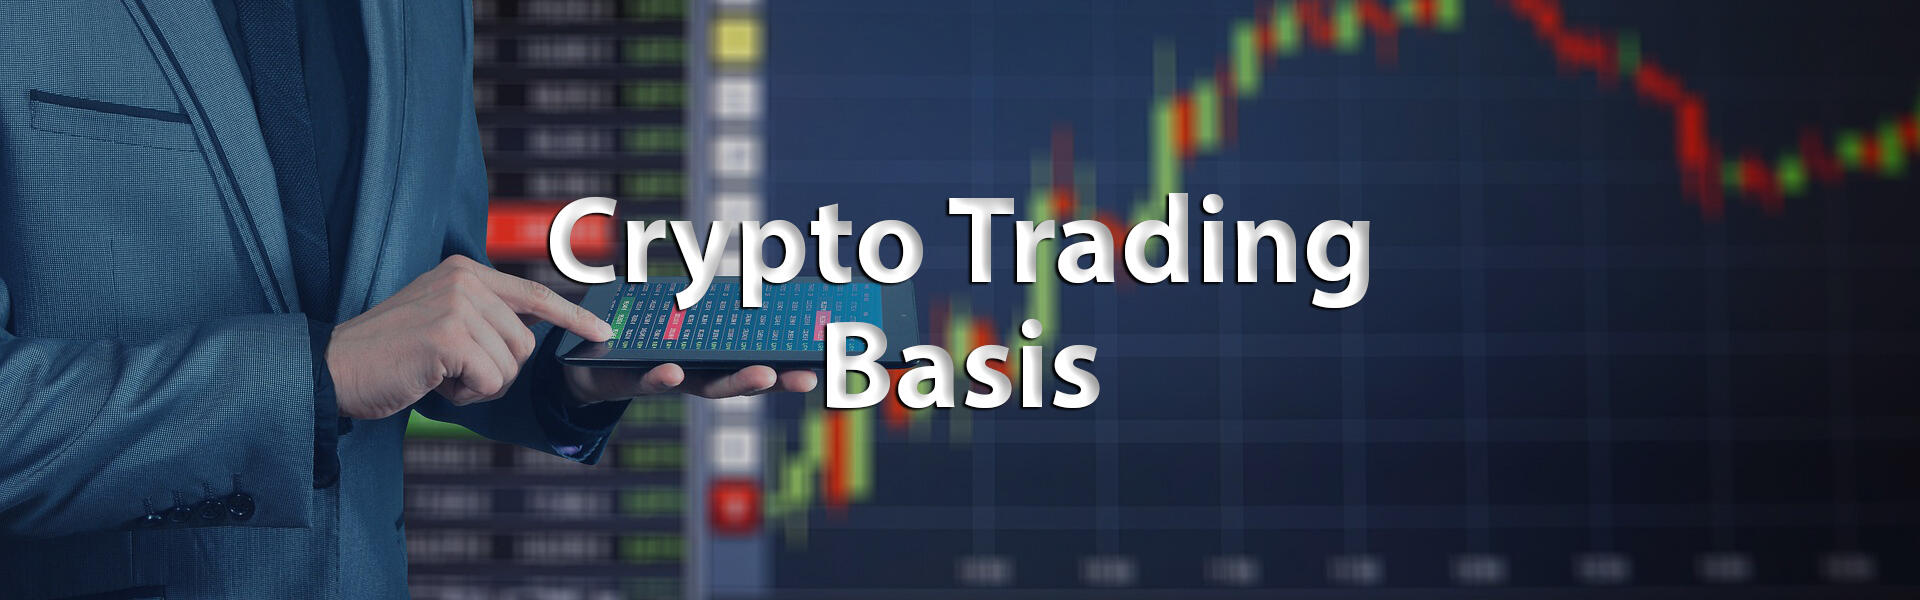 Why basis cryptocurrency will fail